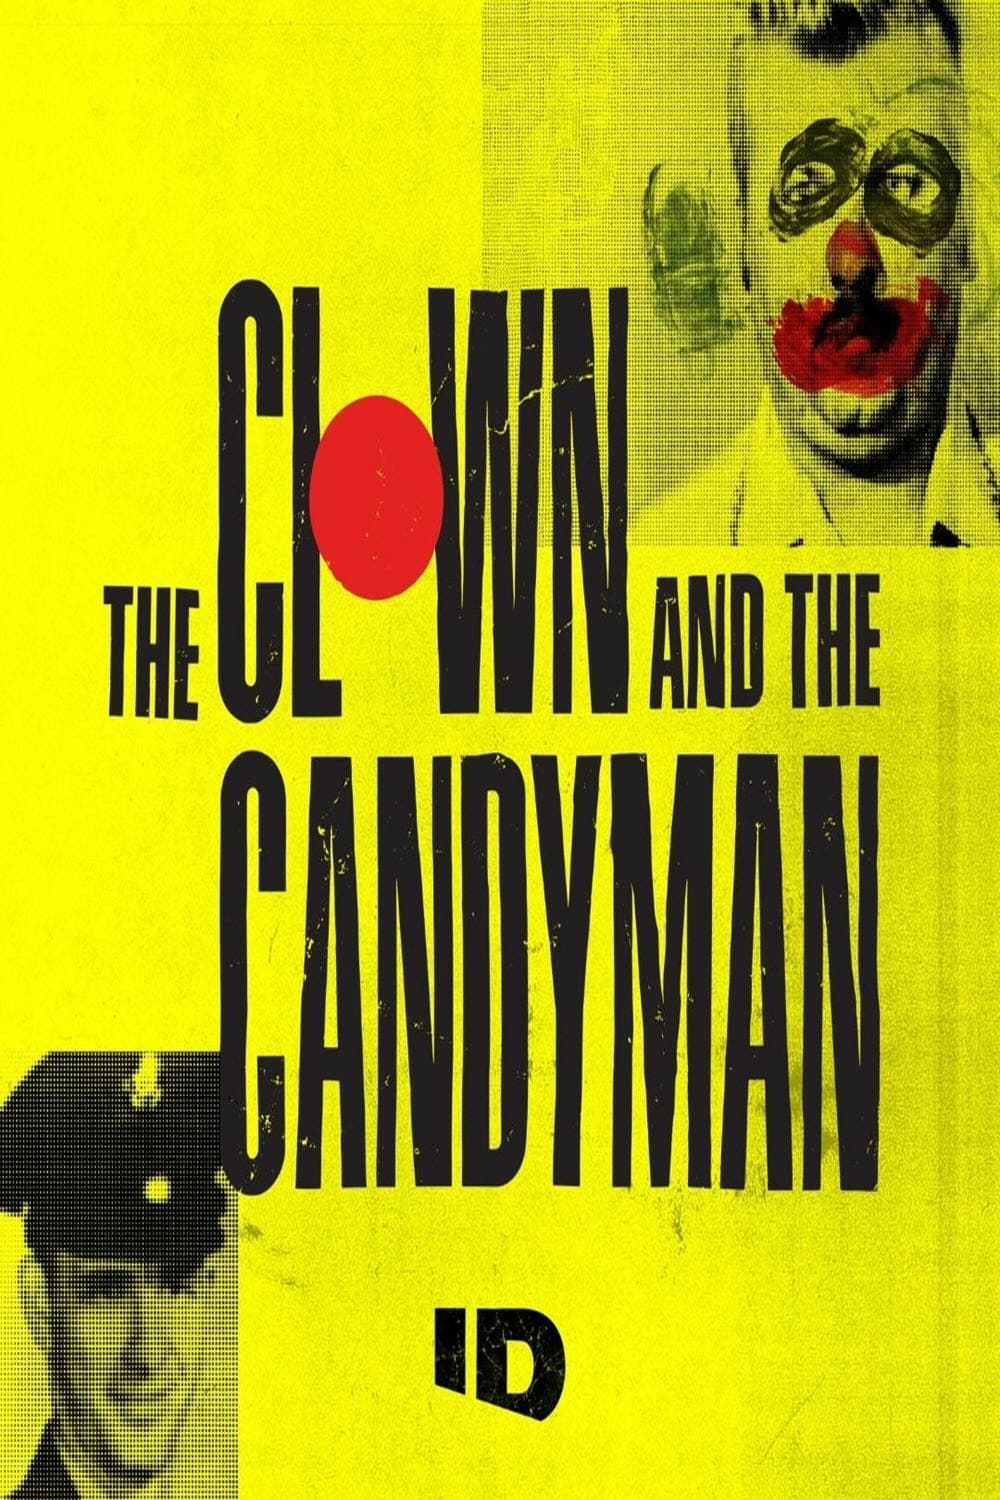 The Clown and the Candyman TV Shows About Killer